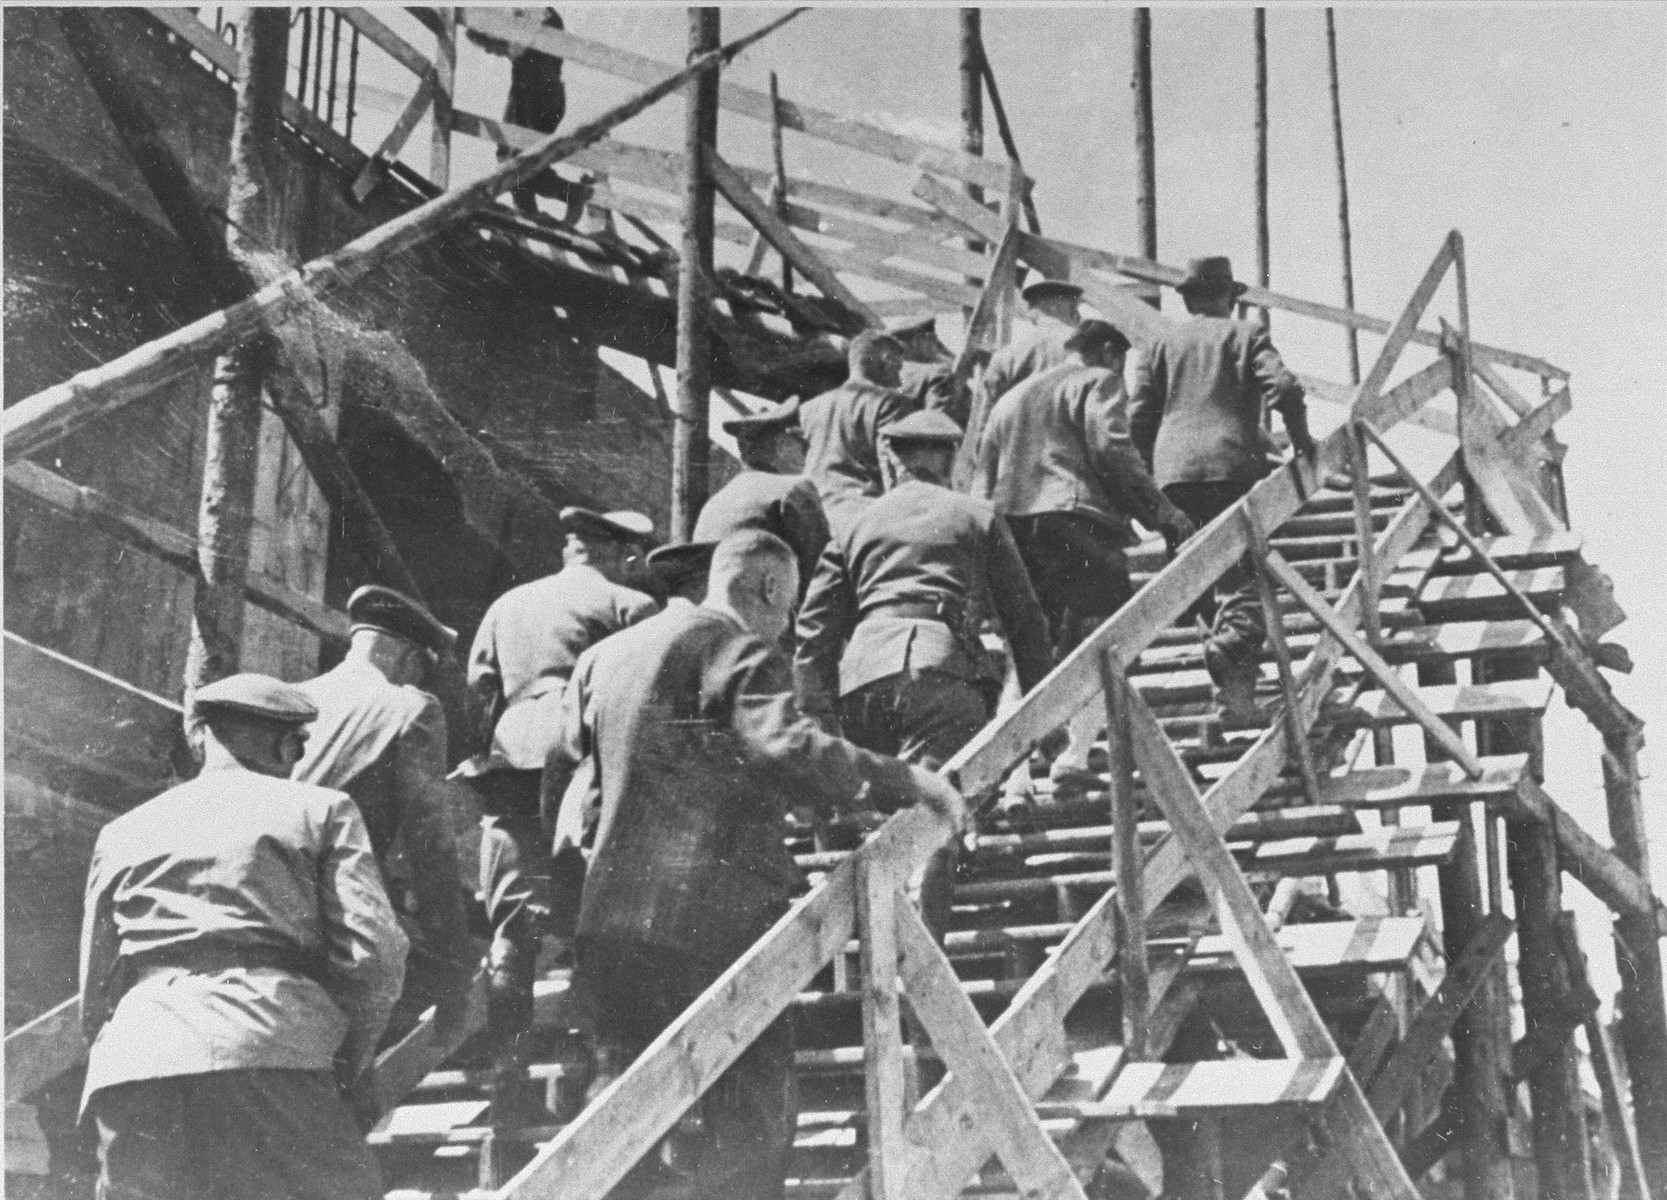 Reichsfuehrer SS Heinrich Himmler (top left) climbs a wooden staircase during a tour of the Monowitz-Buna building site in the company of Max Faust (top right).   Faust, who was an IG Farben engineer, was the head of building operations at Monowitz-Buna.